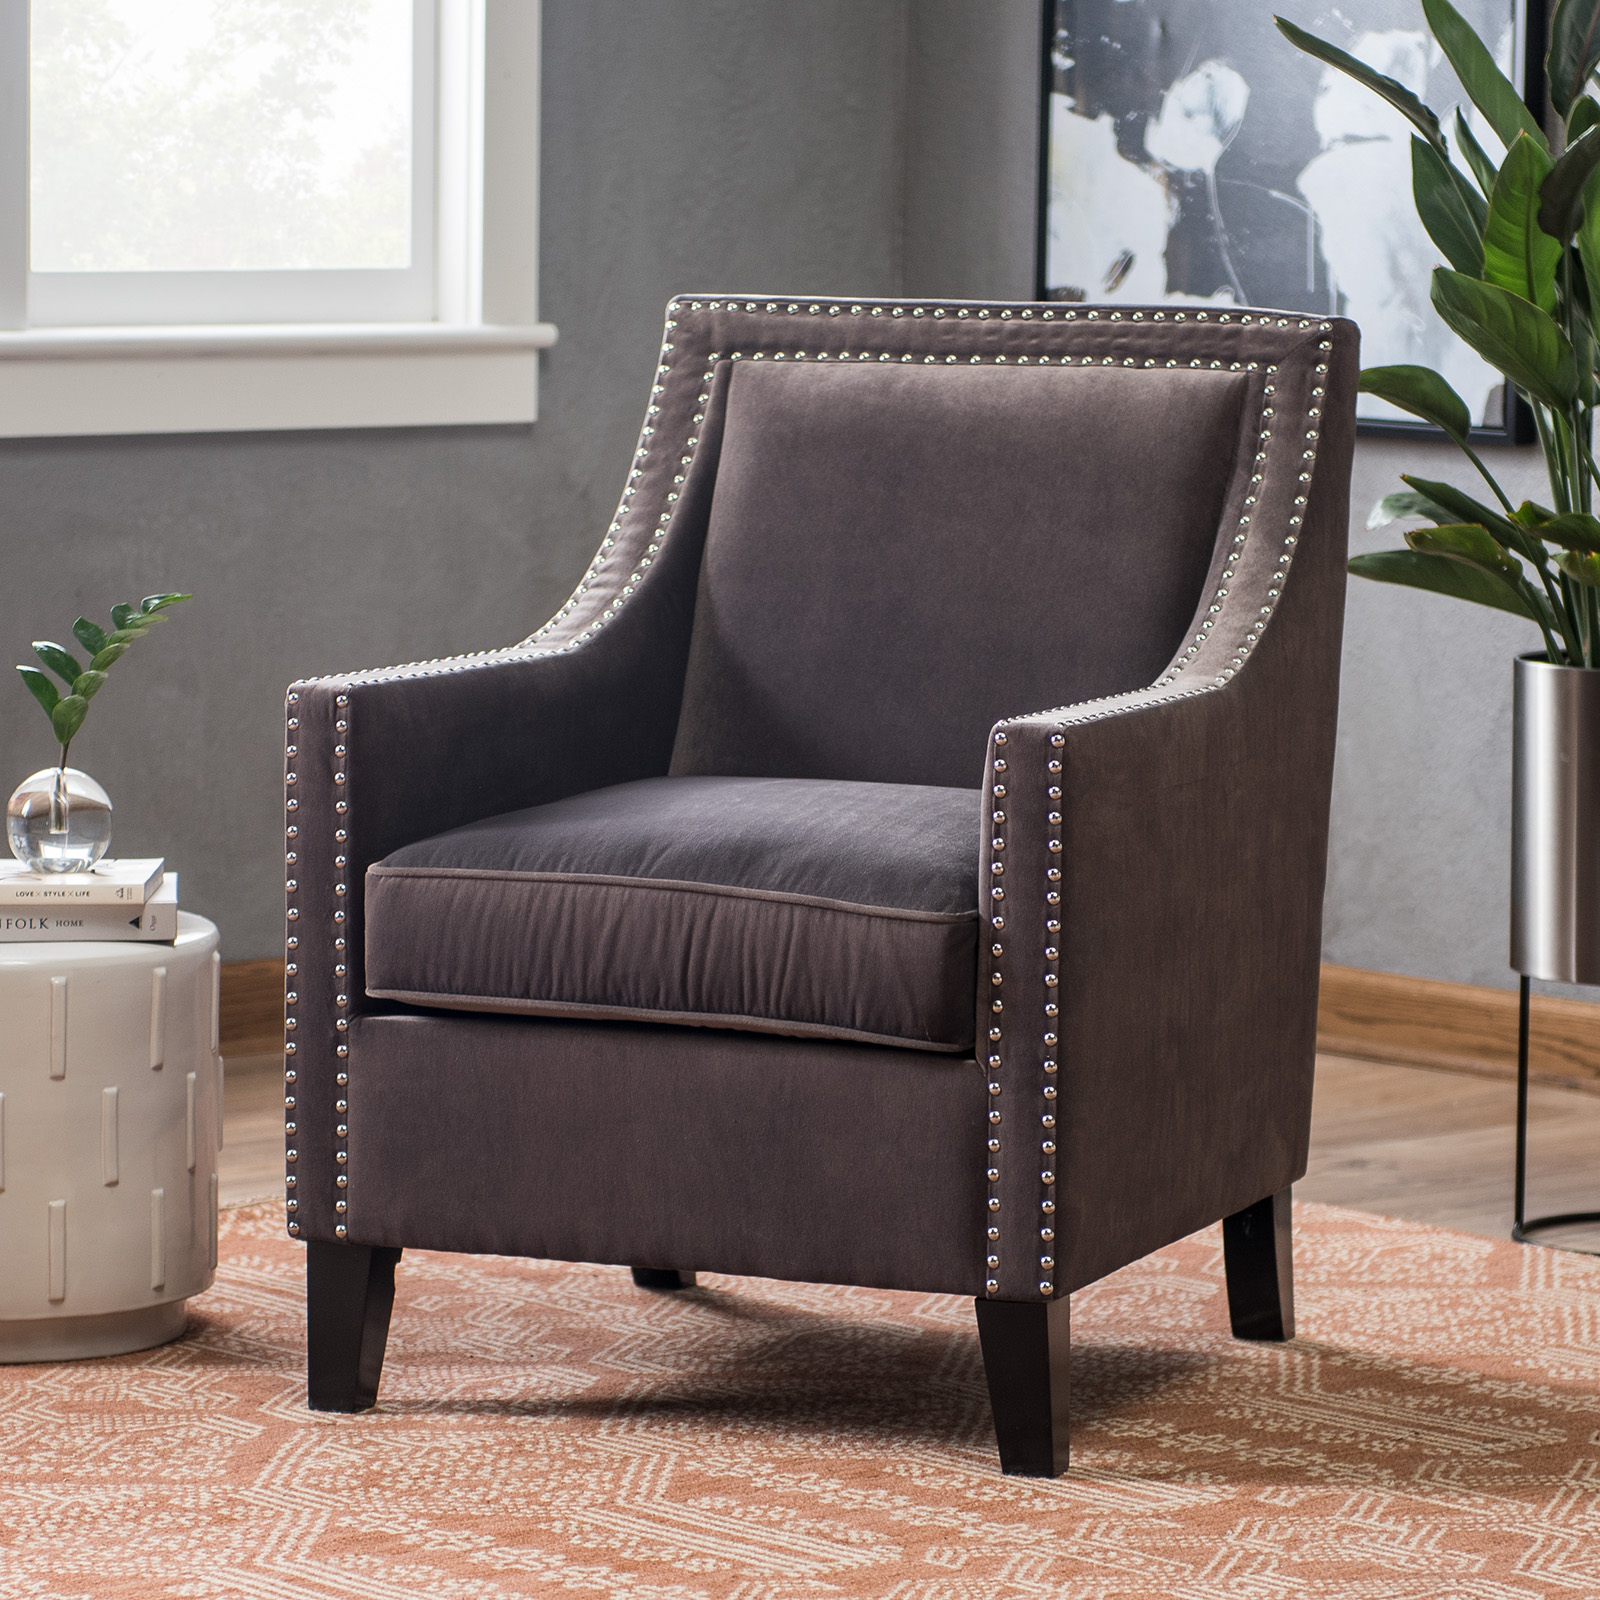 Belham Living Delaney Arm Chair   Taupe